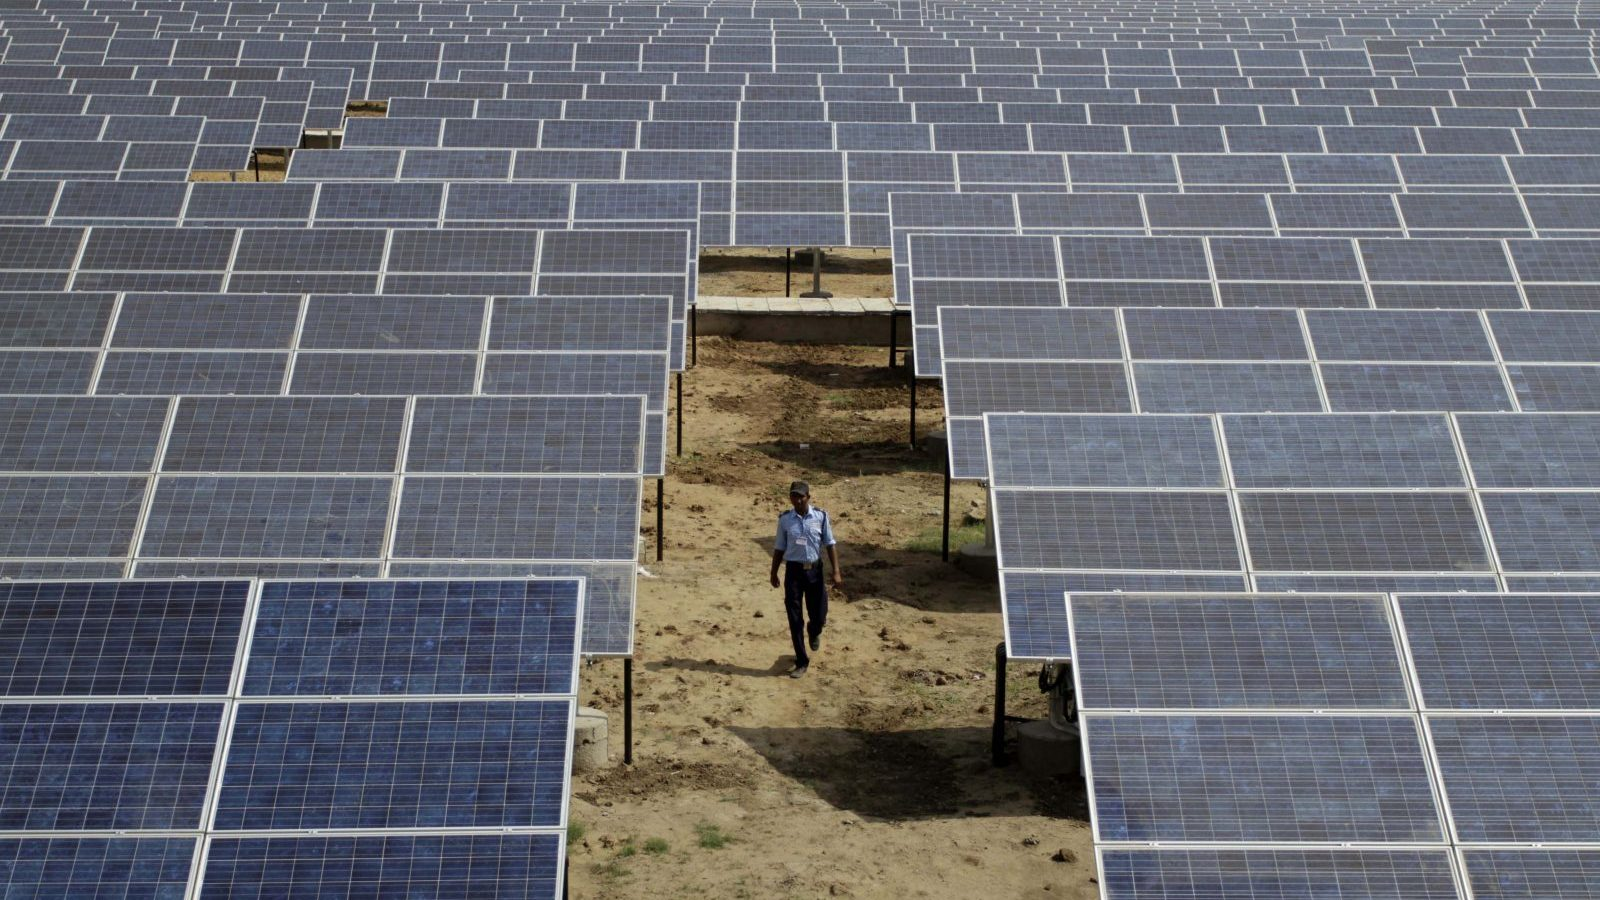 An Indian security guard walks among solar panels at the newly inaugurated solar photovoltaic power plant at Khadoda, in Sabarkantha district, about 90 kilometers (56 miles) from Ahmadabad, India, Friday, June 10, 2011. Gujarat chief Minister Narendra Modi unveiled the power plant of Azure Power, one of the largest utility-scale solar power plants in the country. (AP Photo/Ajit Solanki)